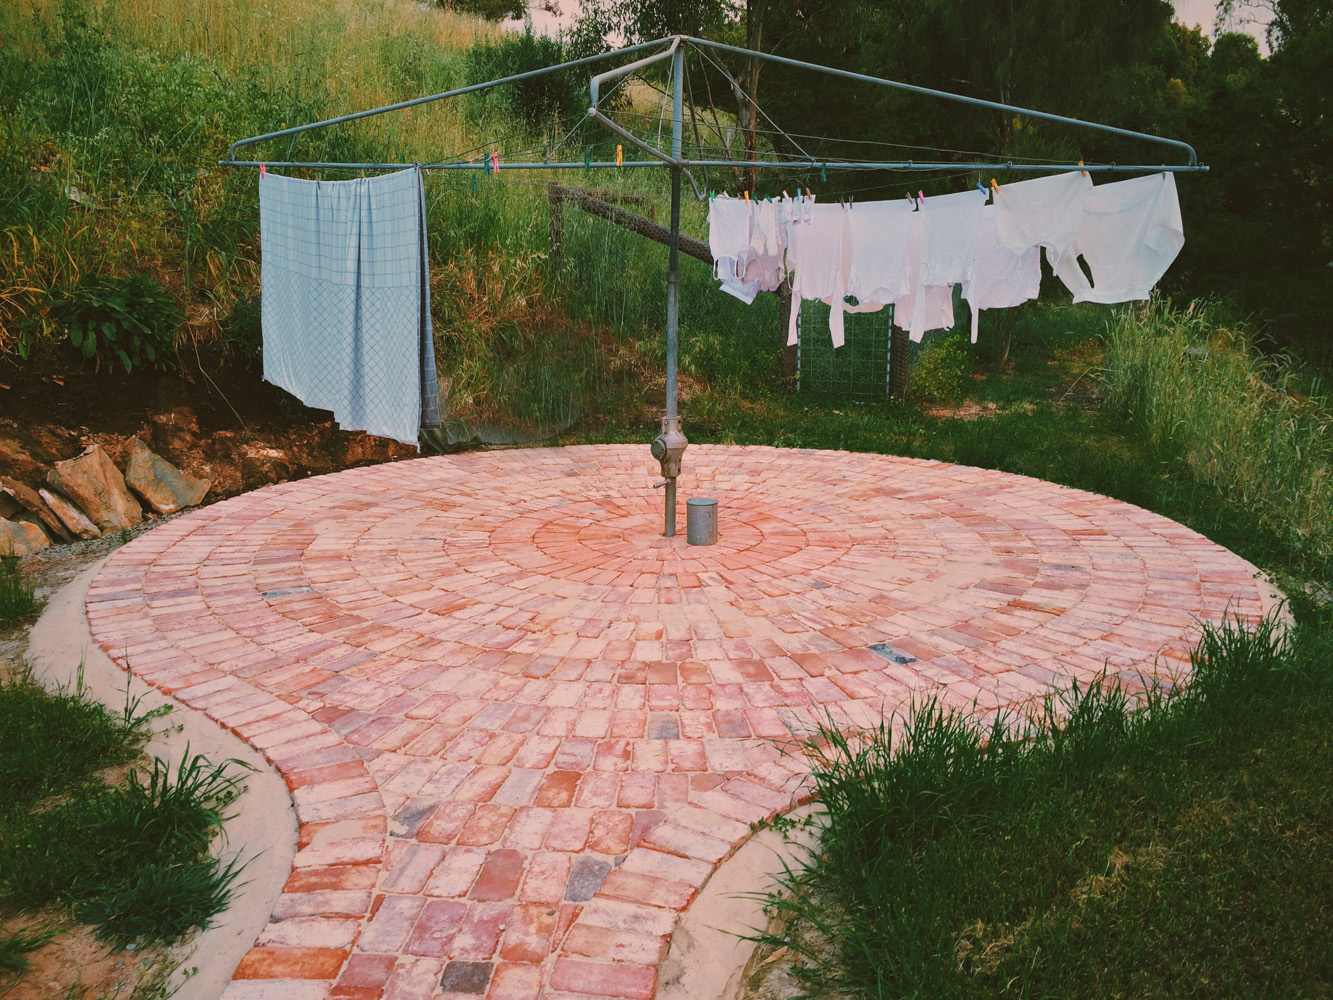 Old red brick clothesline pavement